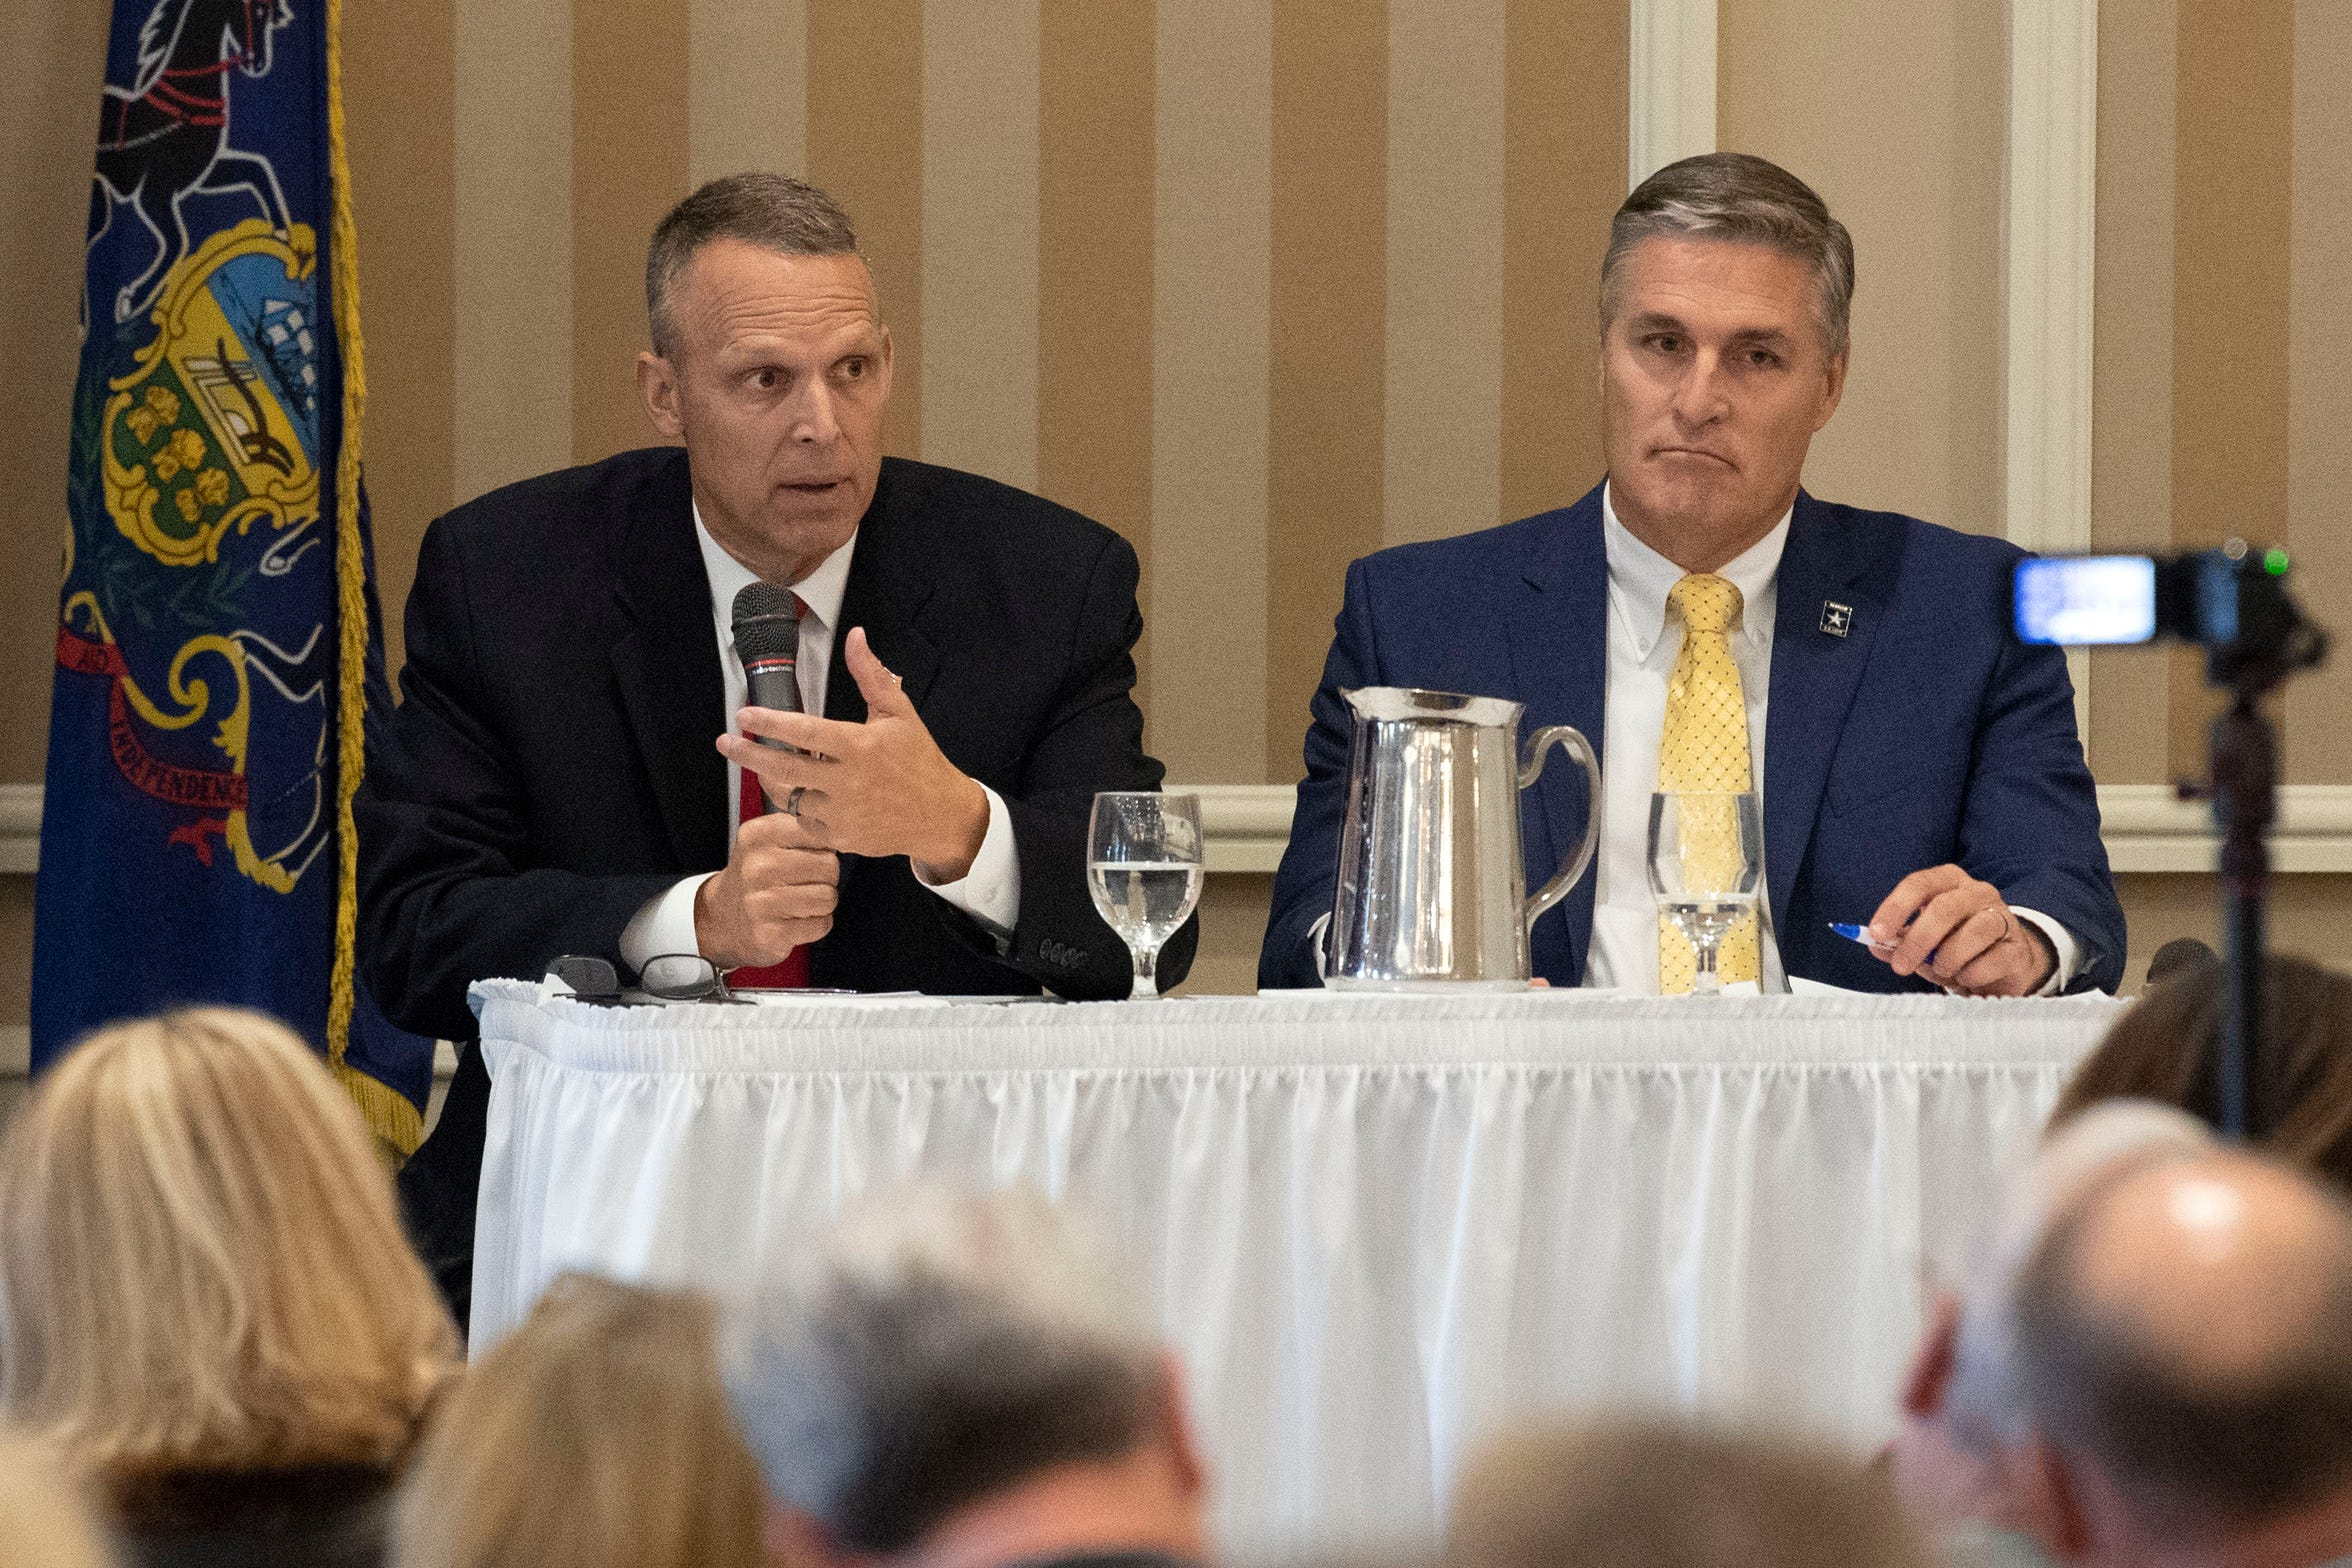 U.S. Rep. Scott Perry, R-York County, left, speaks during a debate against Democratic challenger George Scott at the Country Club of York on Wednesday, September 19, 2018. The 10th Congressional District boundaries encompass the cities of Harrisburg and York. The Supreme Court of Pennsylvania redrew the district in 2018 after ruling the previous map unconstitutional.